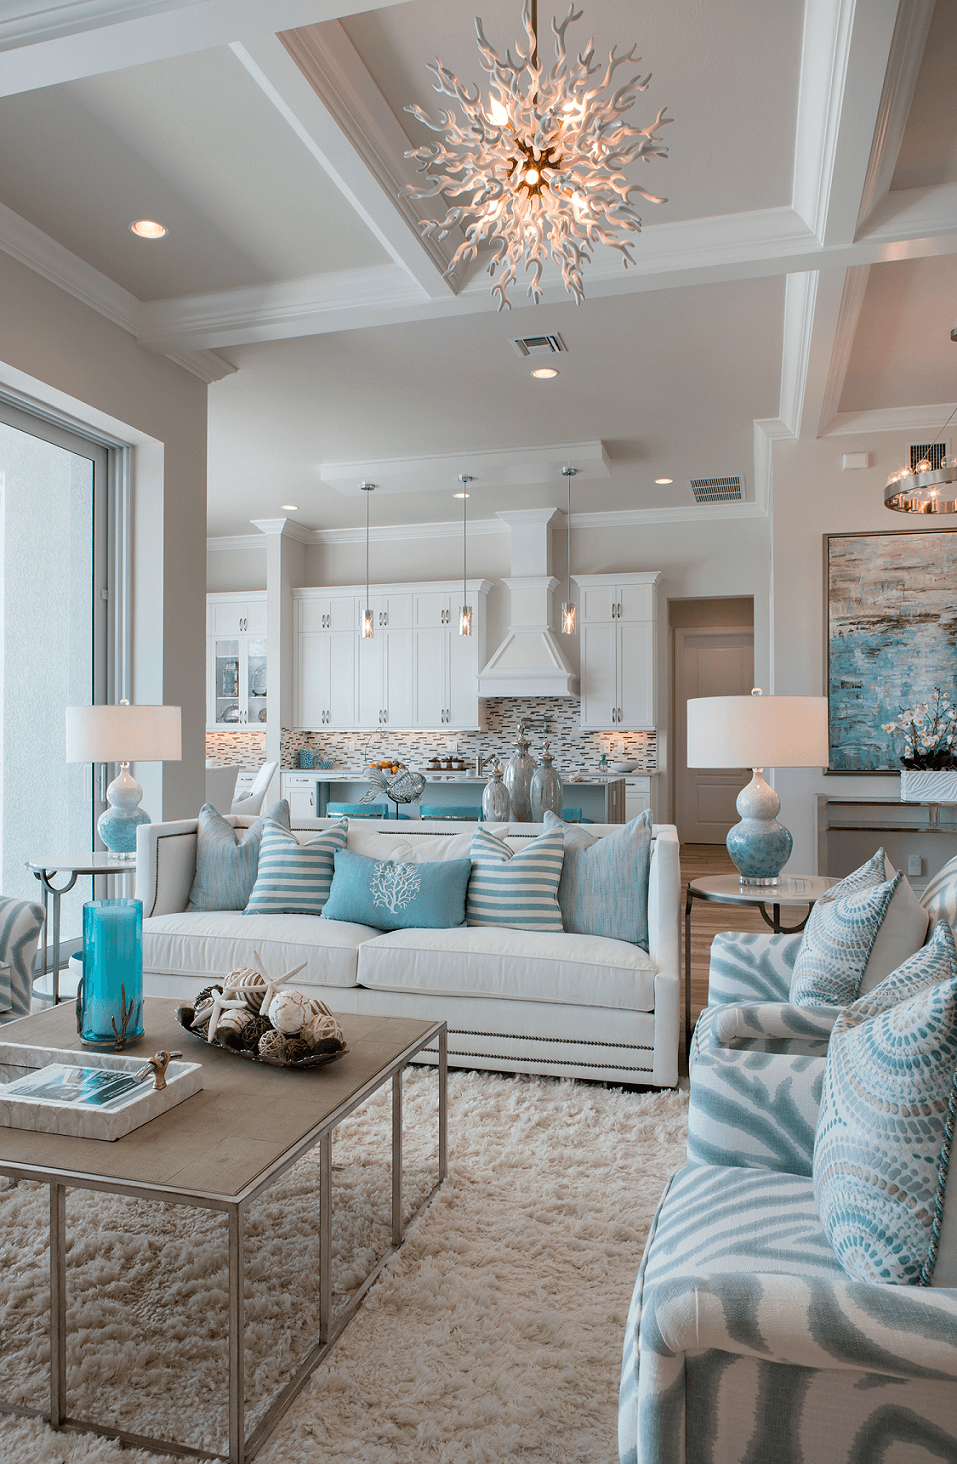 Coastal Decorating Ideas with Turquoise Accents